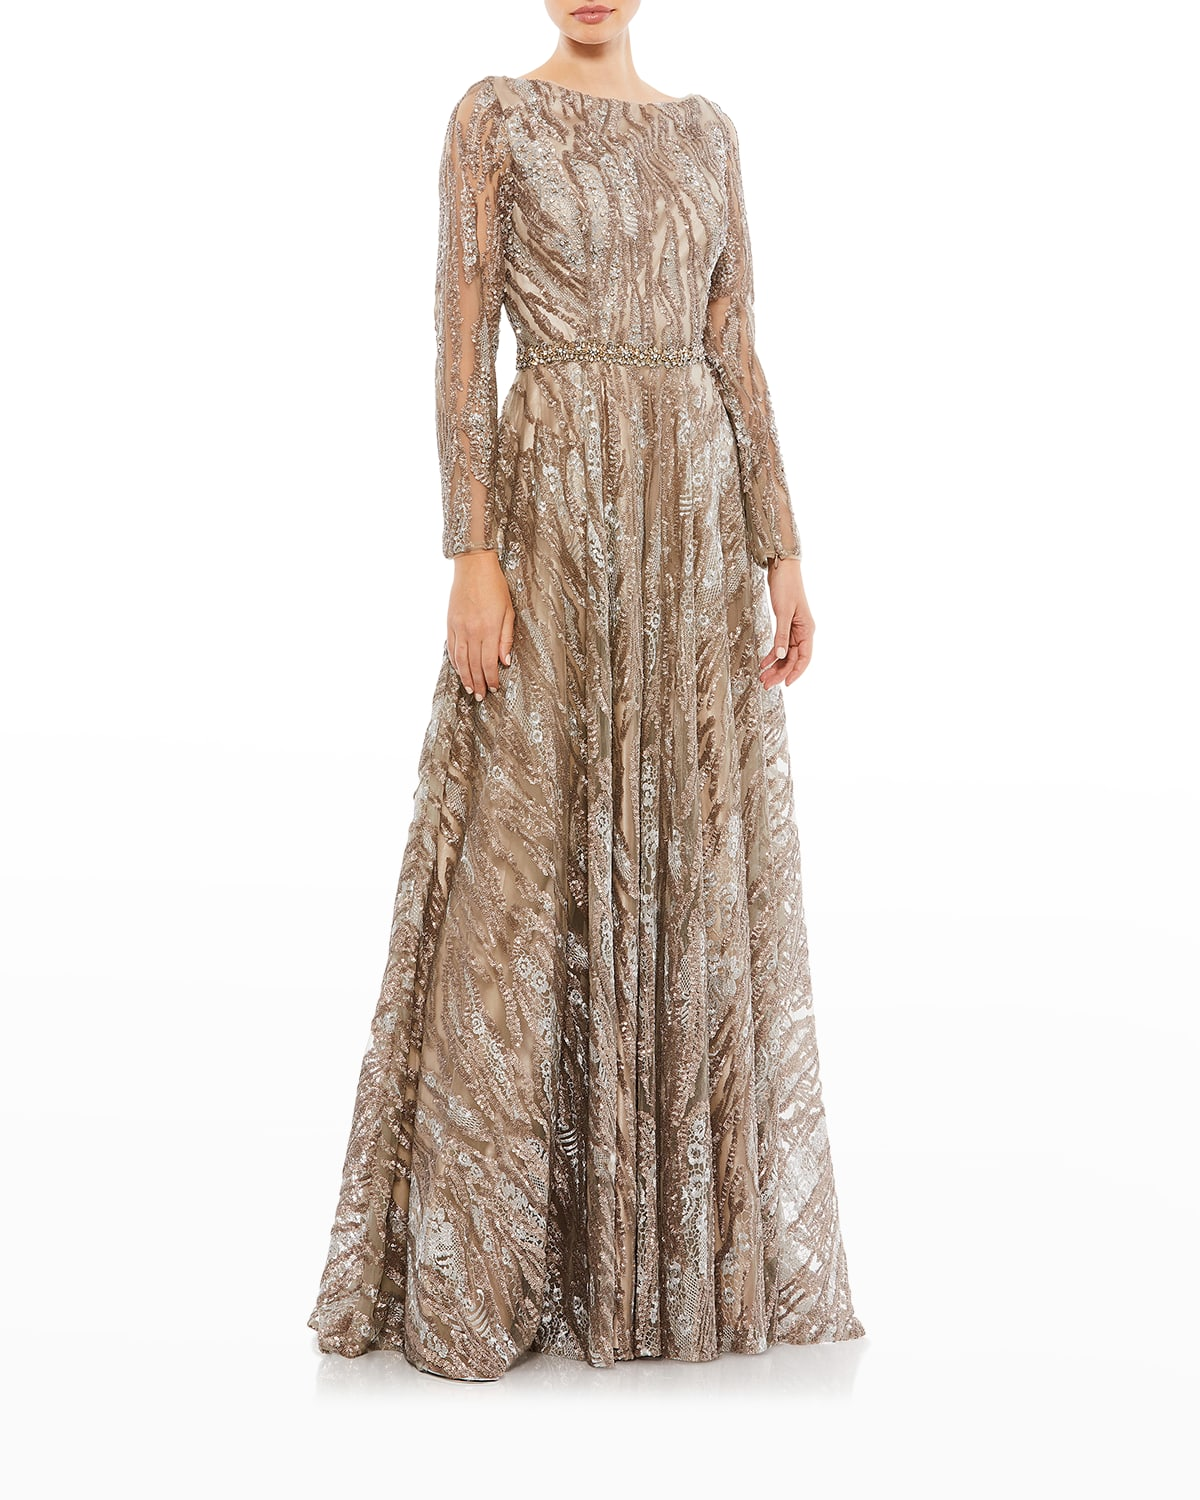 Sequins & Floral Lace Long-Sleeve Novelty Ball Gown